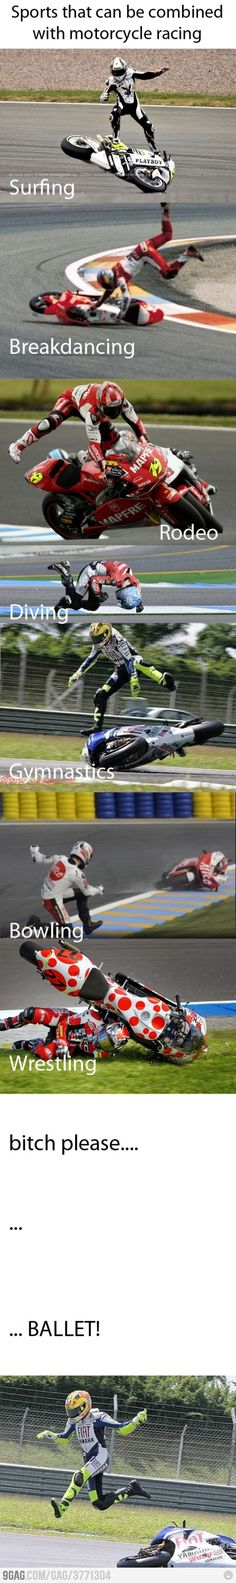 And you said motorsport wasn't a legitimate sport?